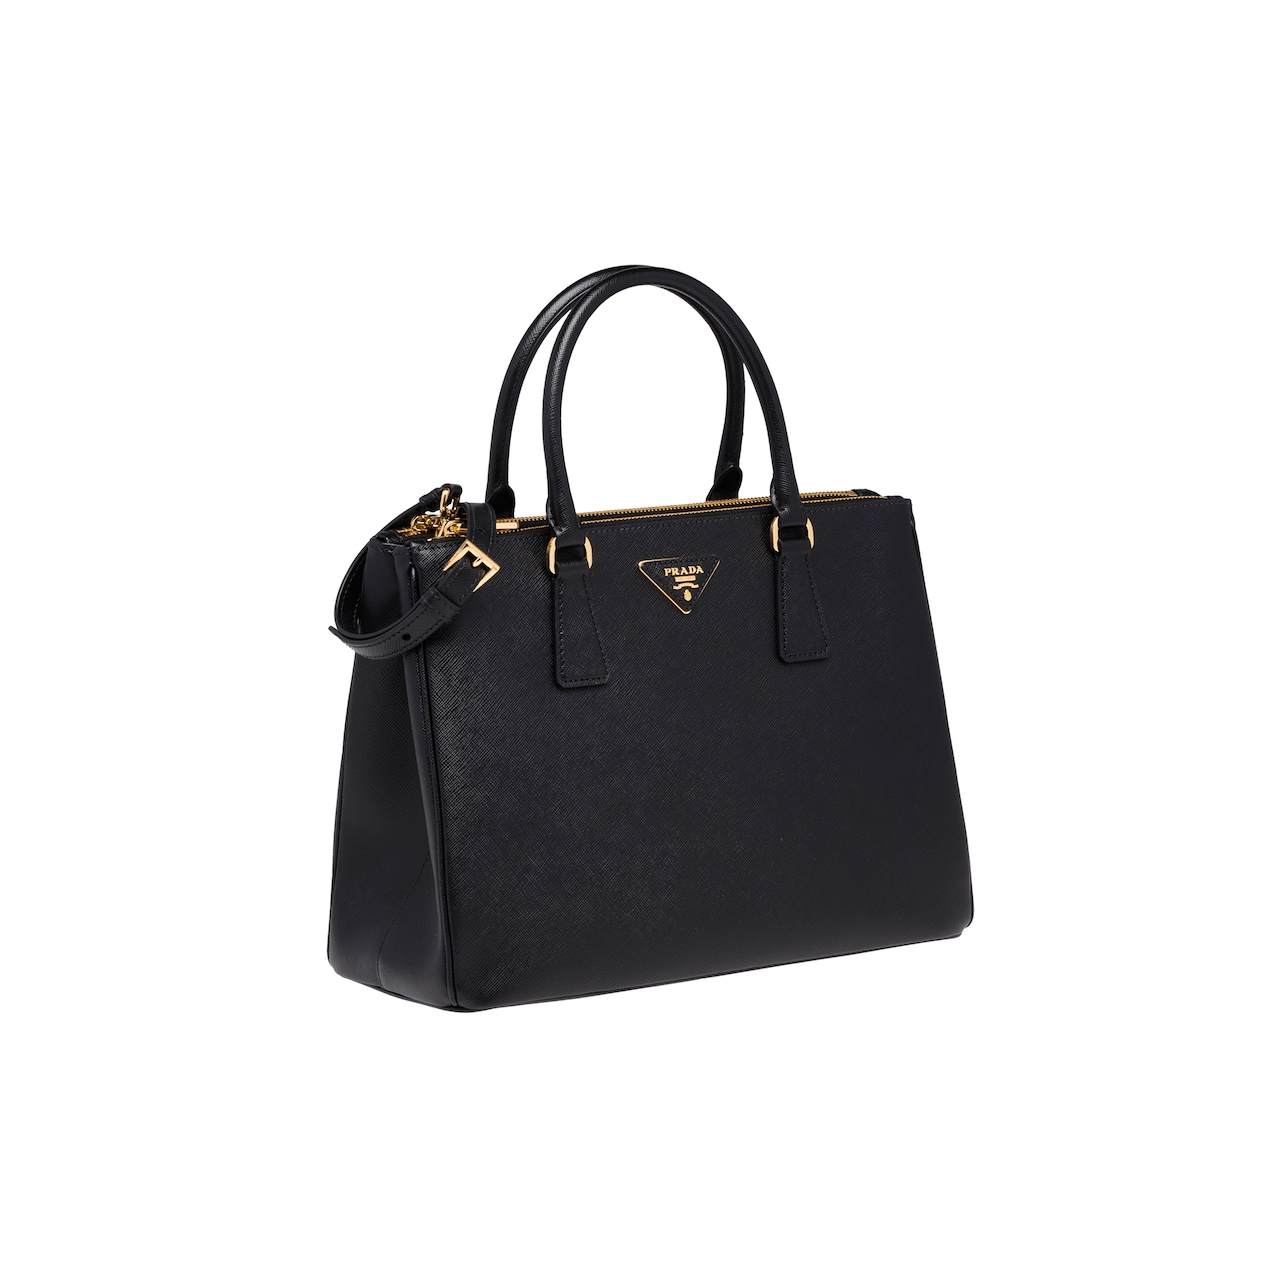 Prada Prada Galleria Medium Saffiano Leather Bag 3